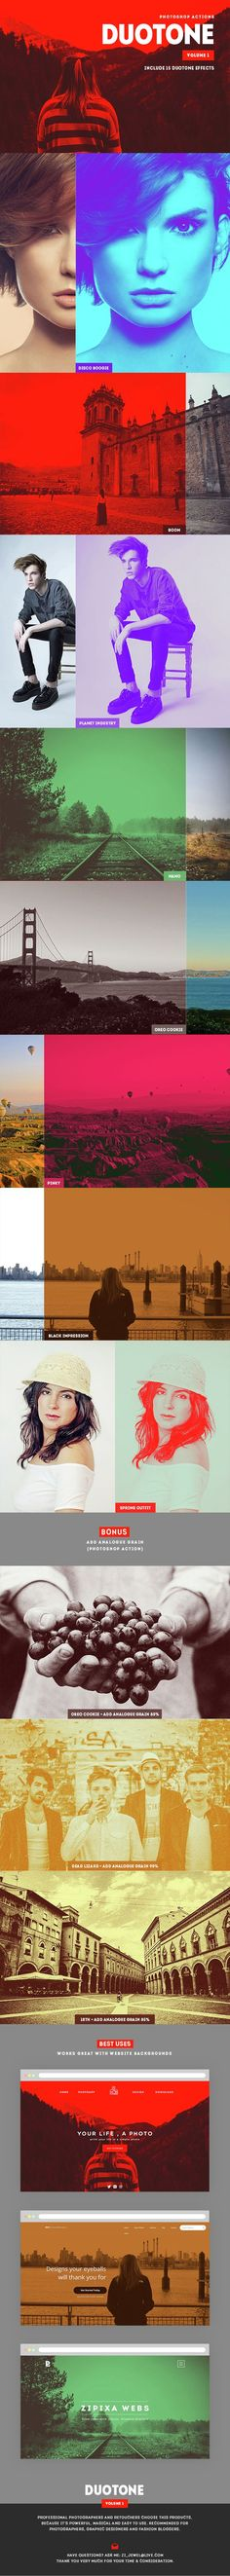 Duotone Photoshop Actions (V.1) #vintage #web • Available here → http://graphicriver.net/item/duotone-photoshop-actions-v1/15404335?ref=pxcr